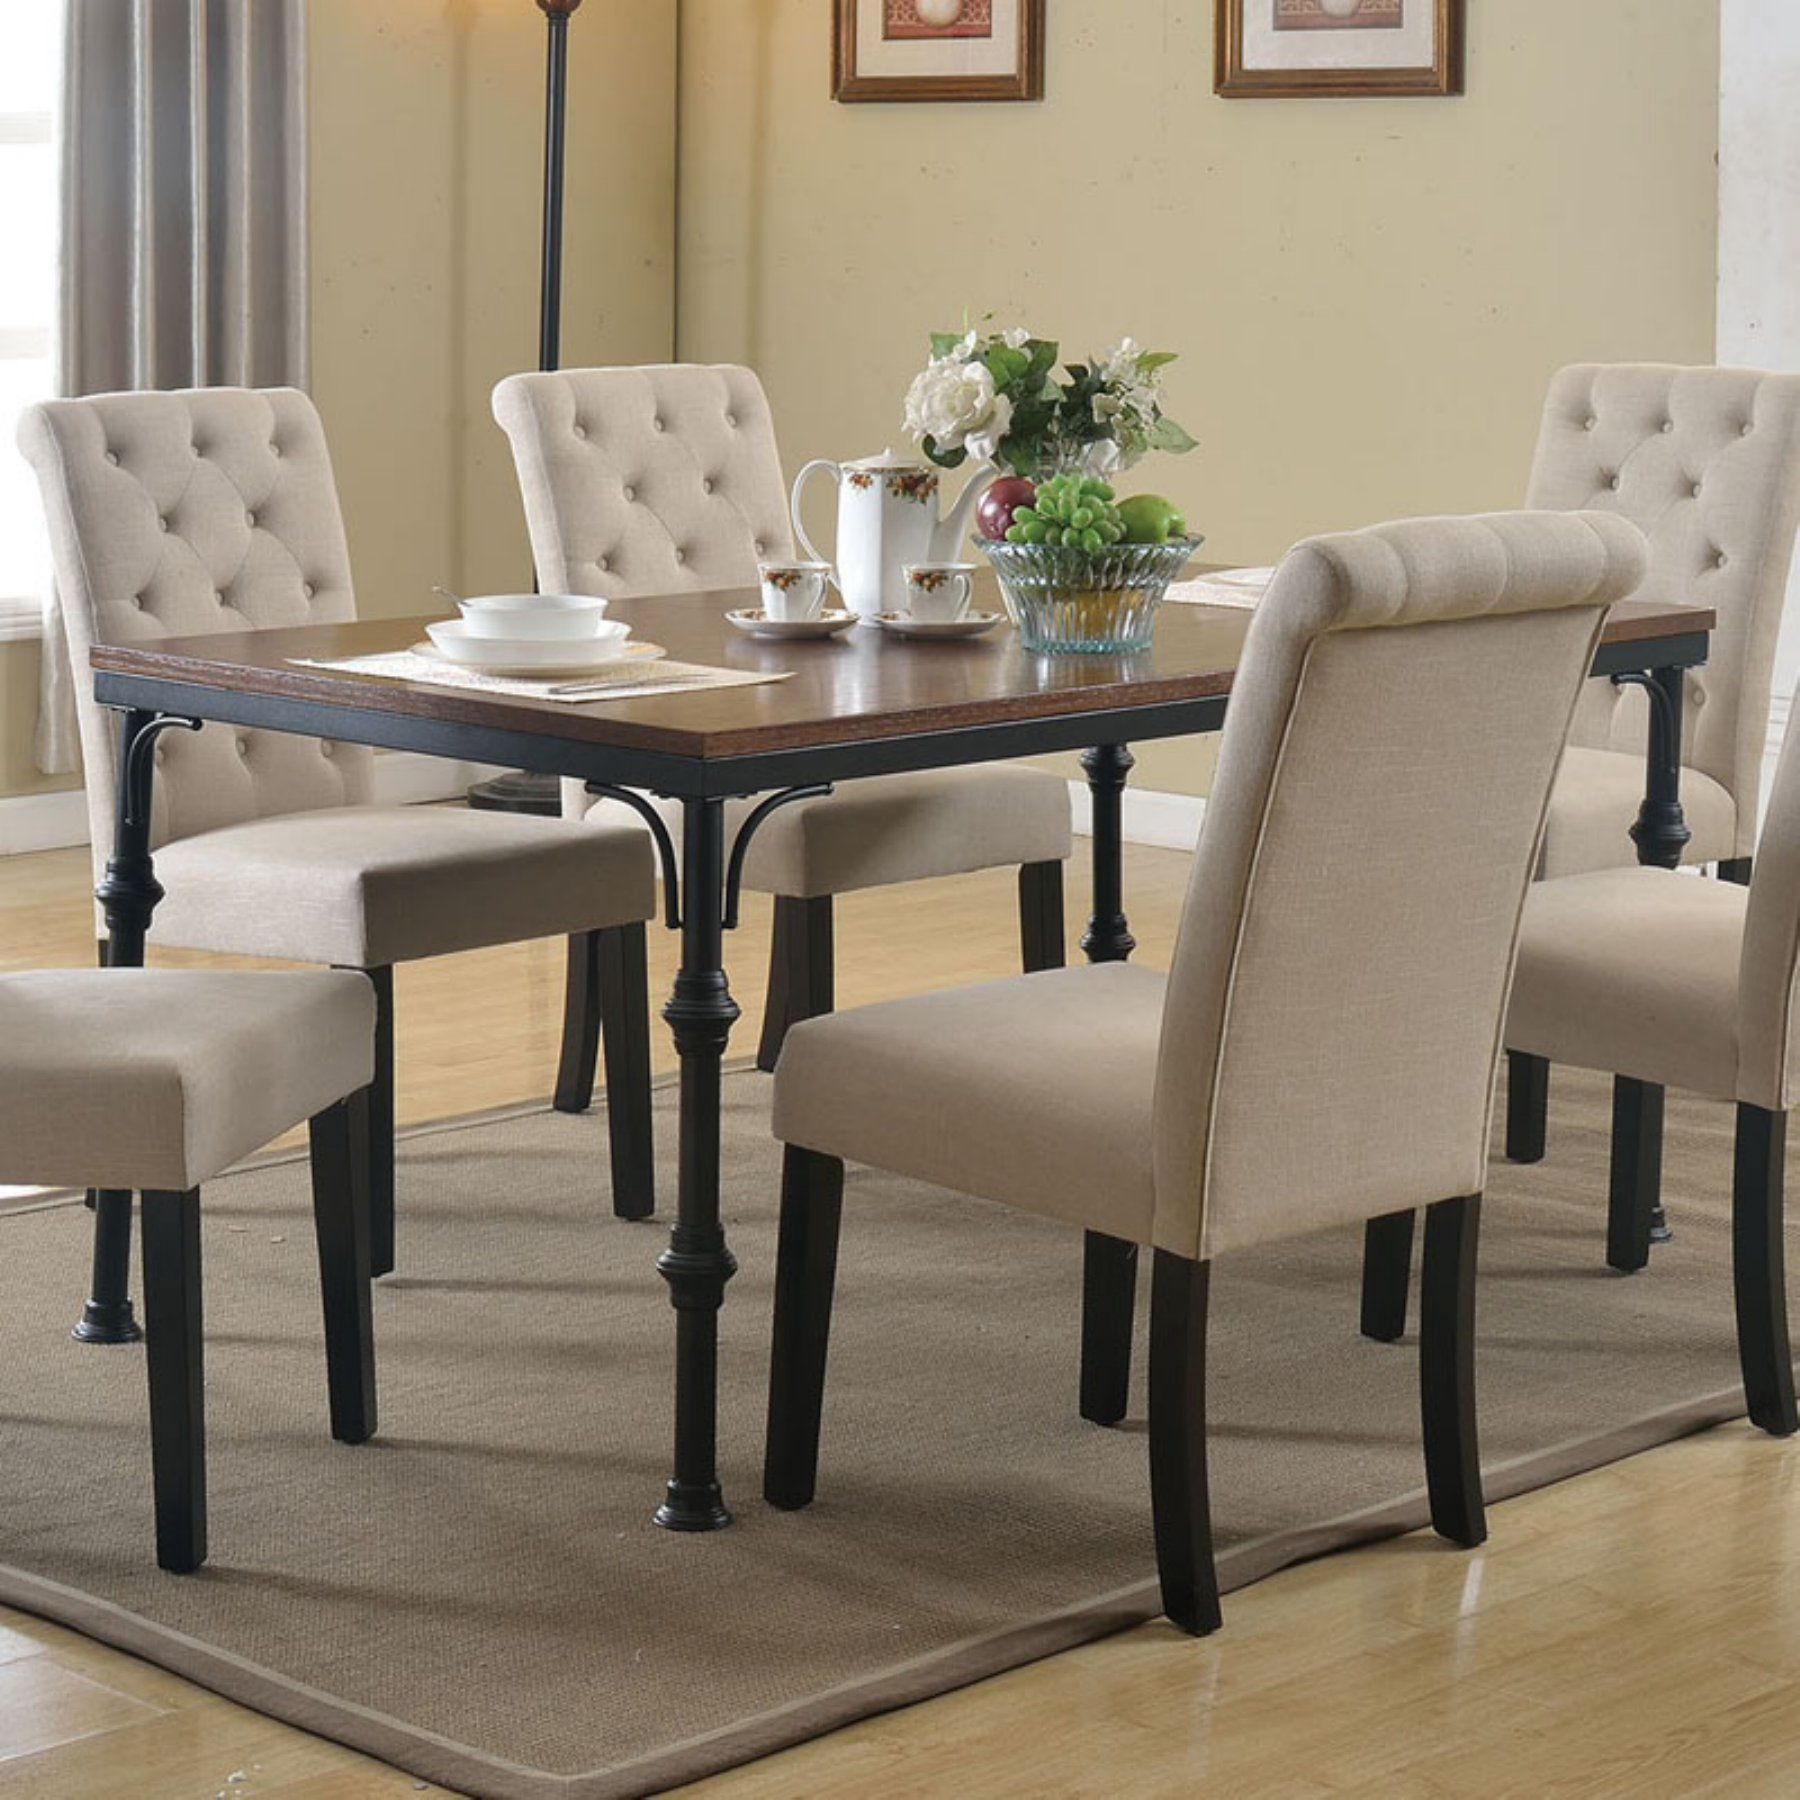 Acme furniture vriel dining table acme furniture and products